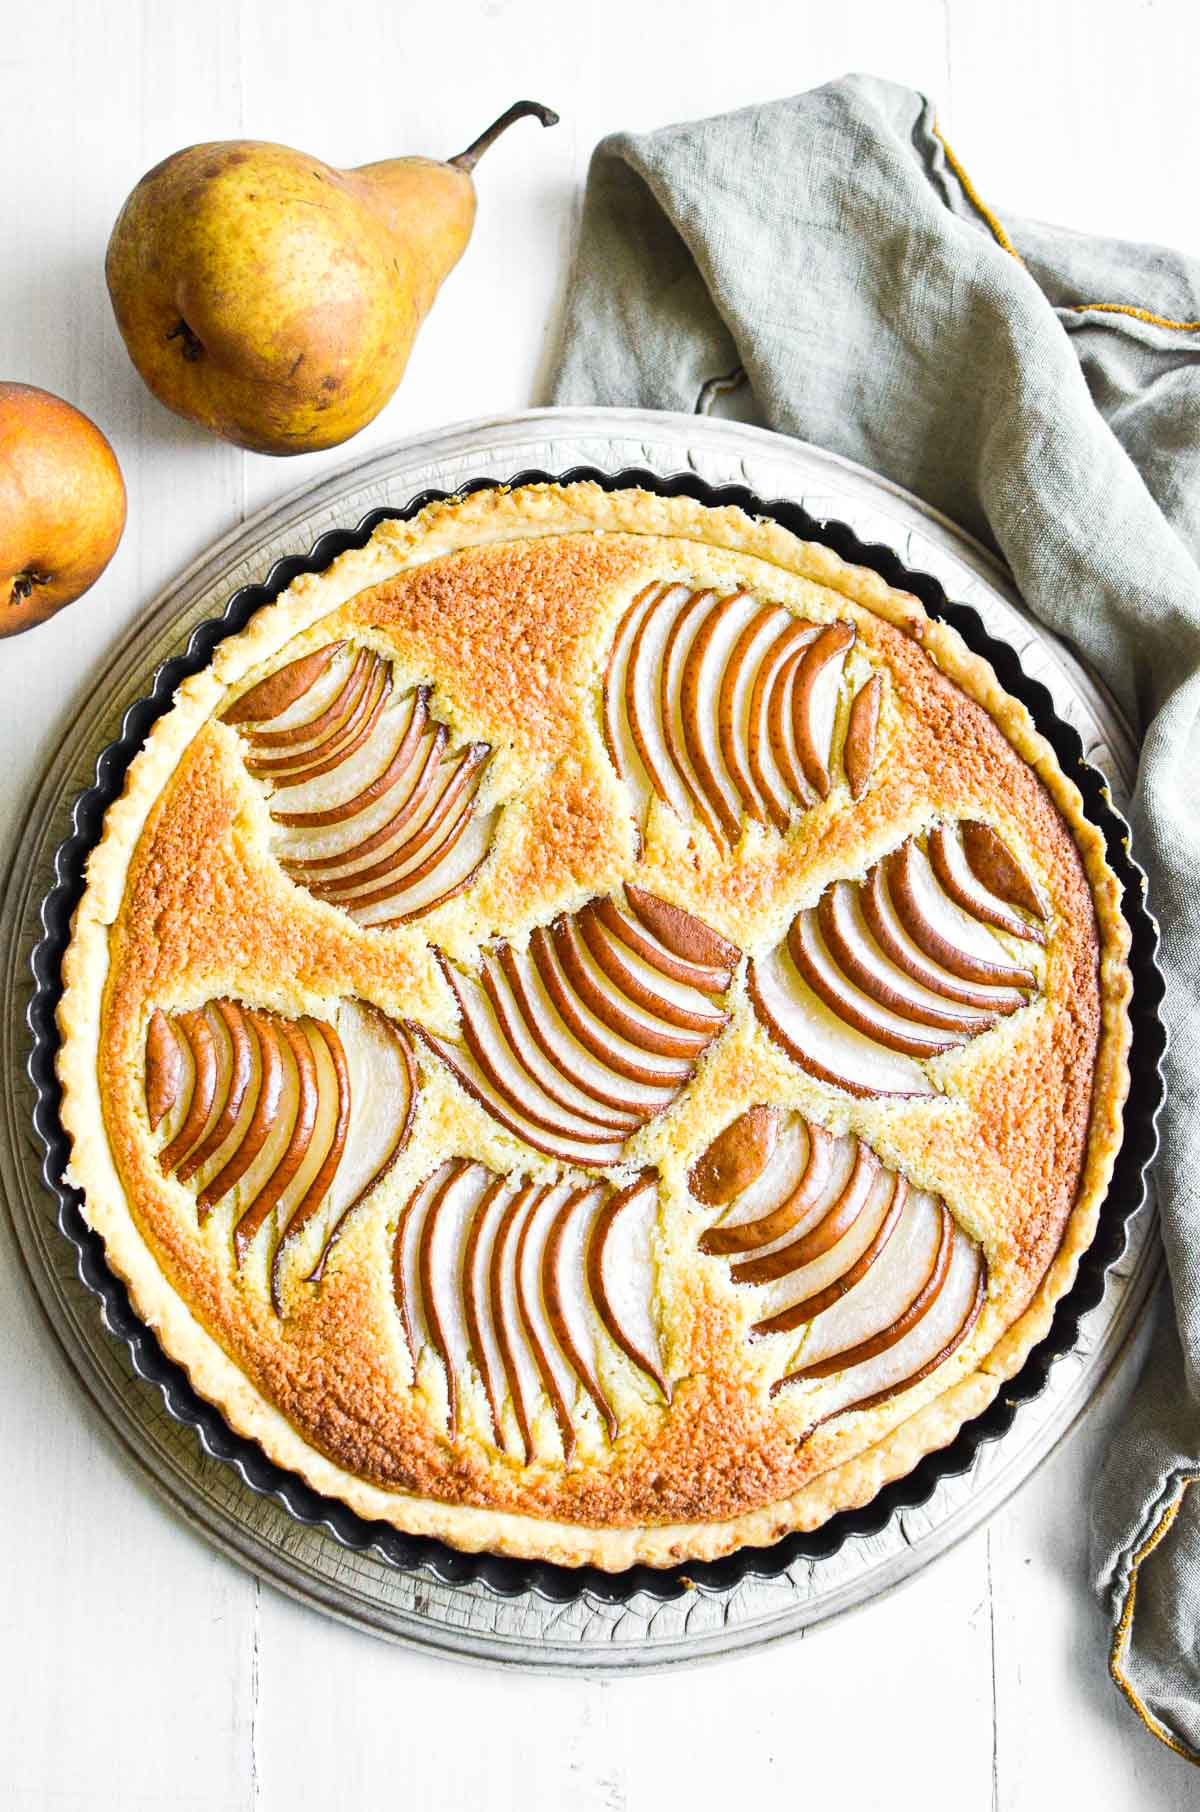 Pear and almond tart after being baked.